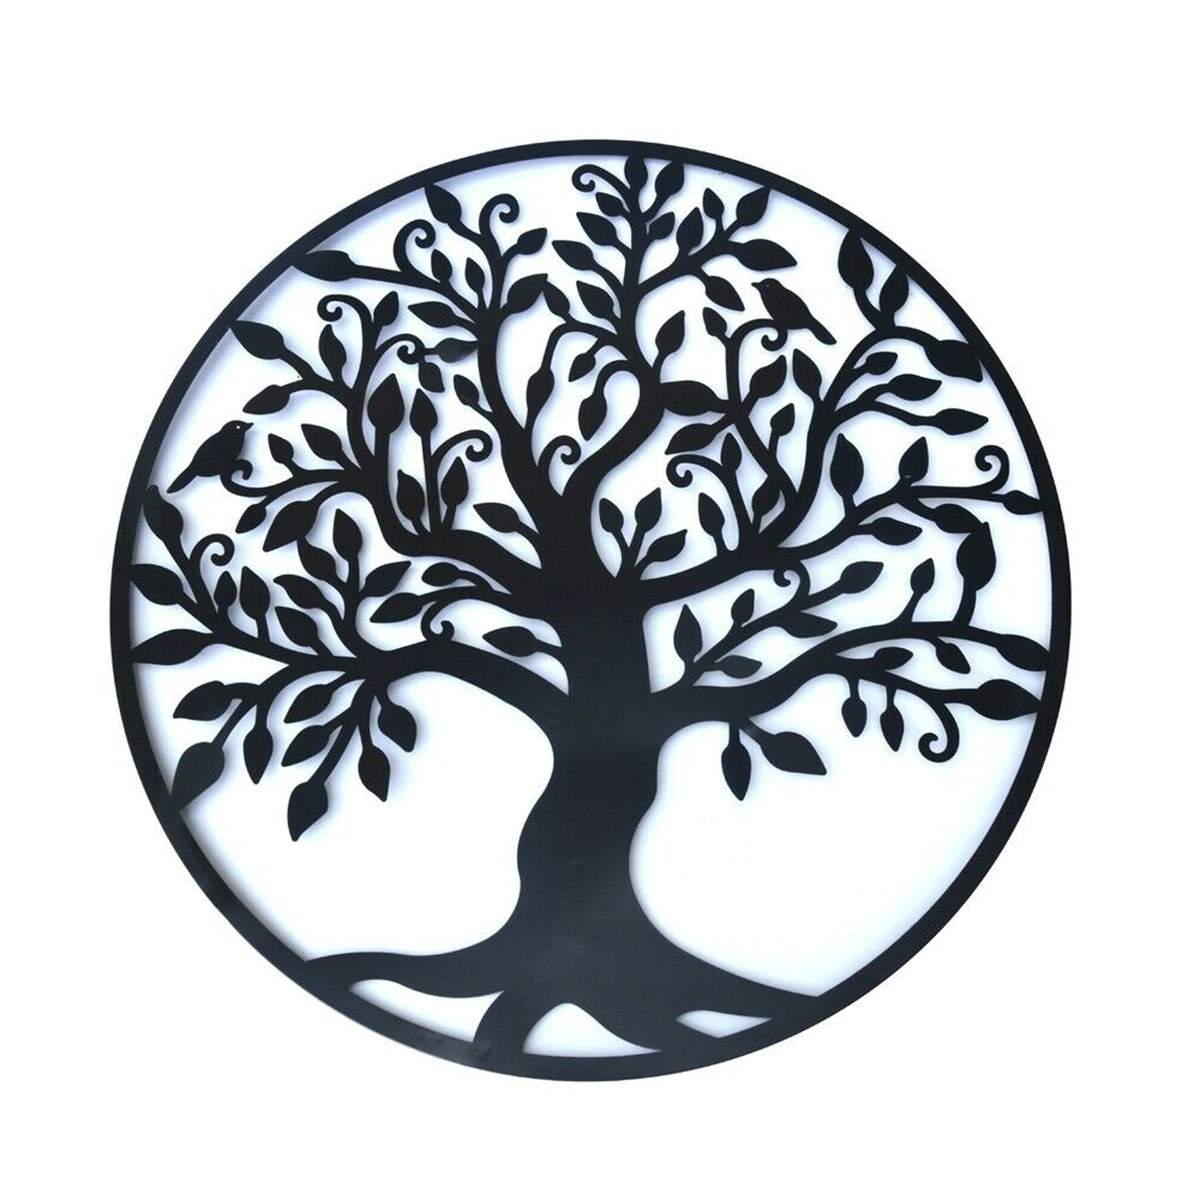 3D Round Wall Hanging Decorations Diameter 60cm Tree Of Life Iron Art Home Hanging Ornament Iron Tree Wall Decoration